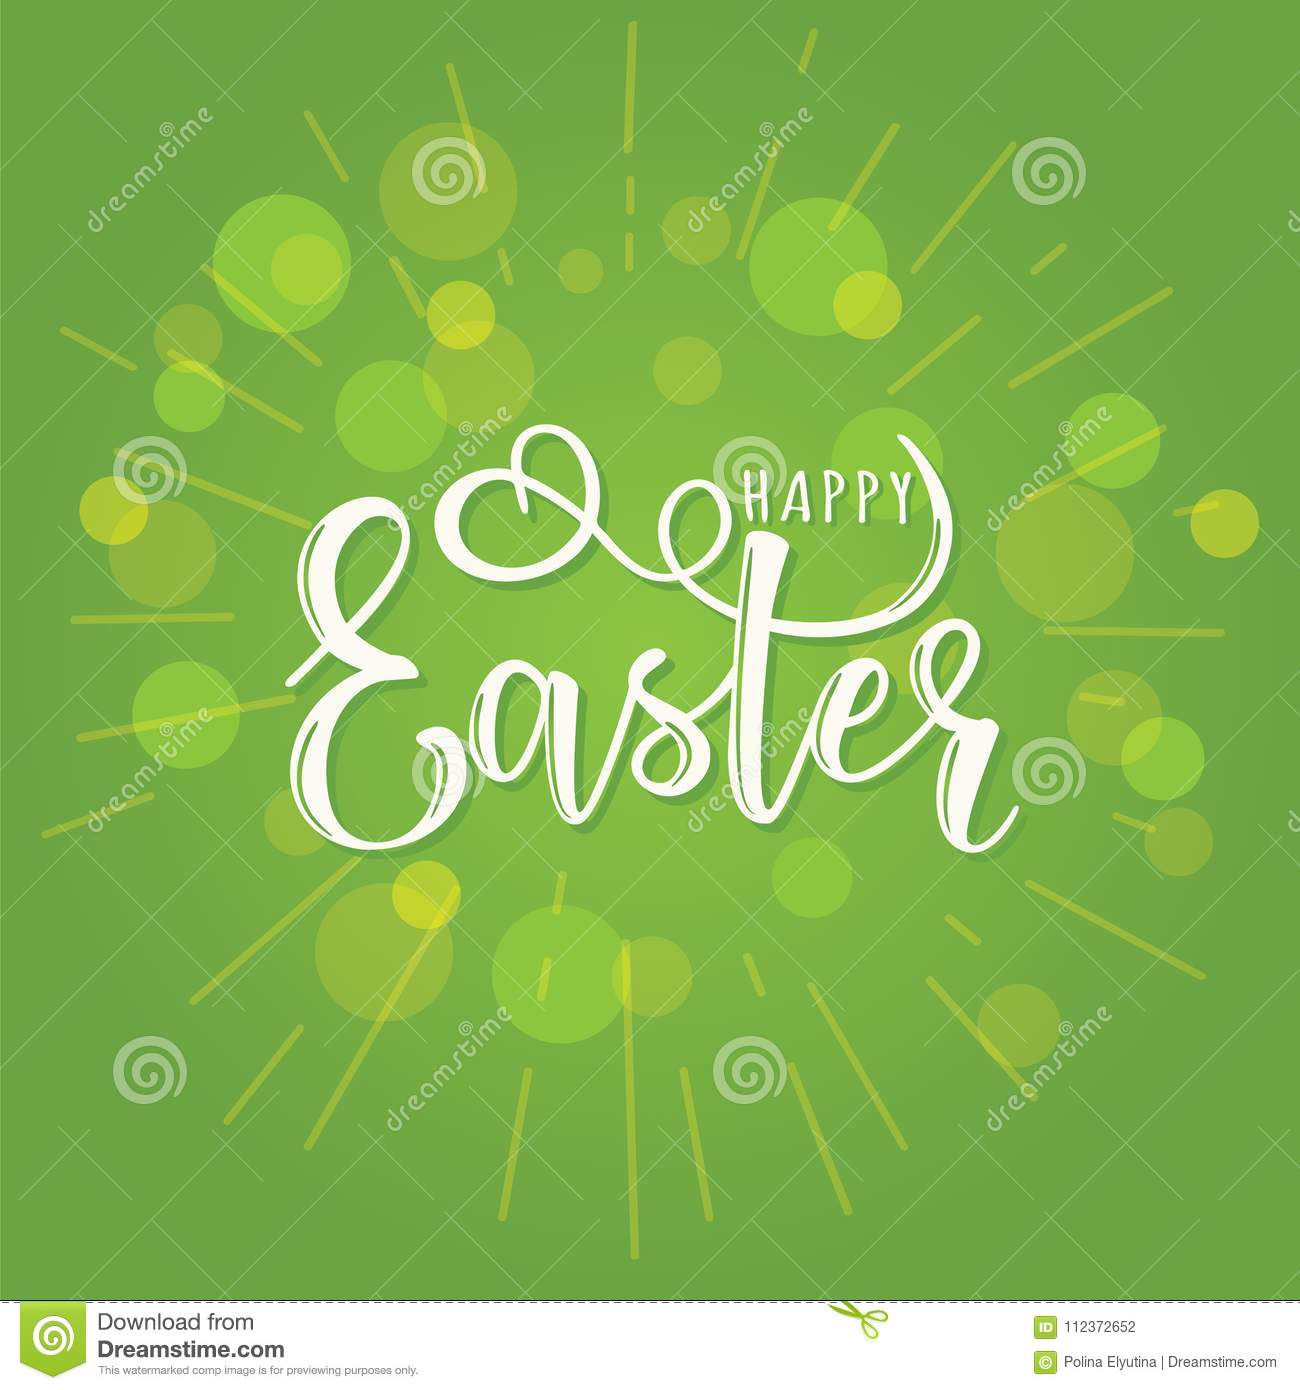 Vector illustration of easter text stock vector illustration of vector illustration of easter text creative decorative kristyandbryce Choice Image